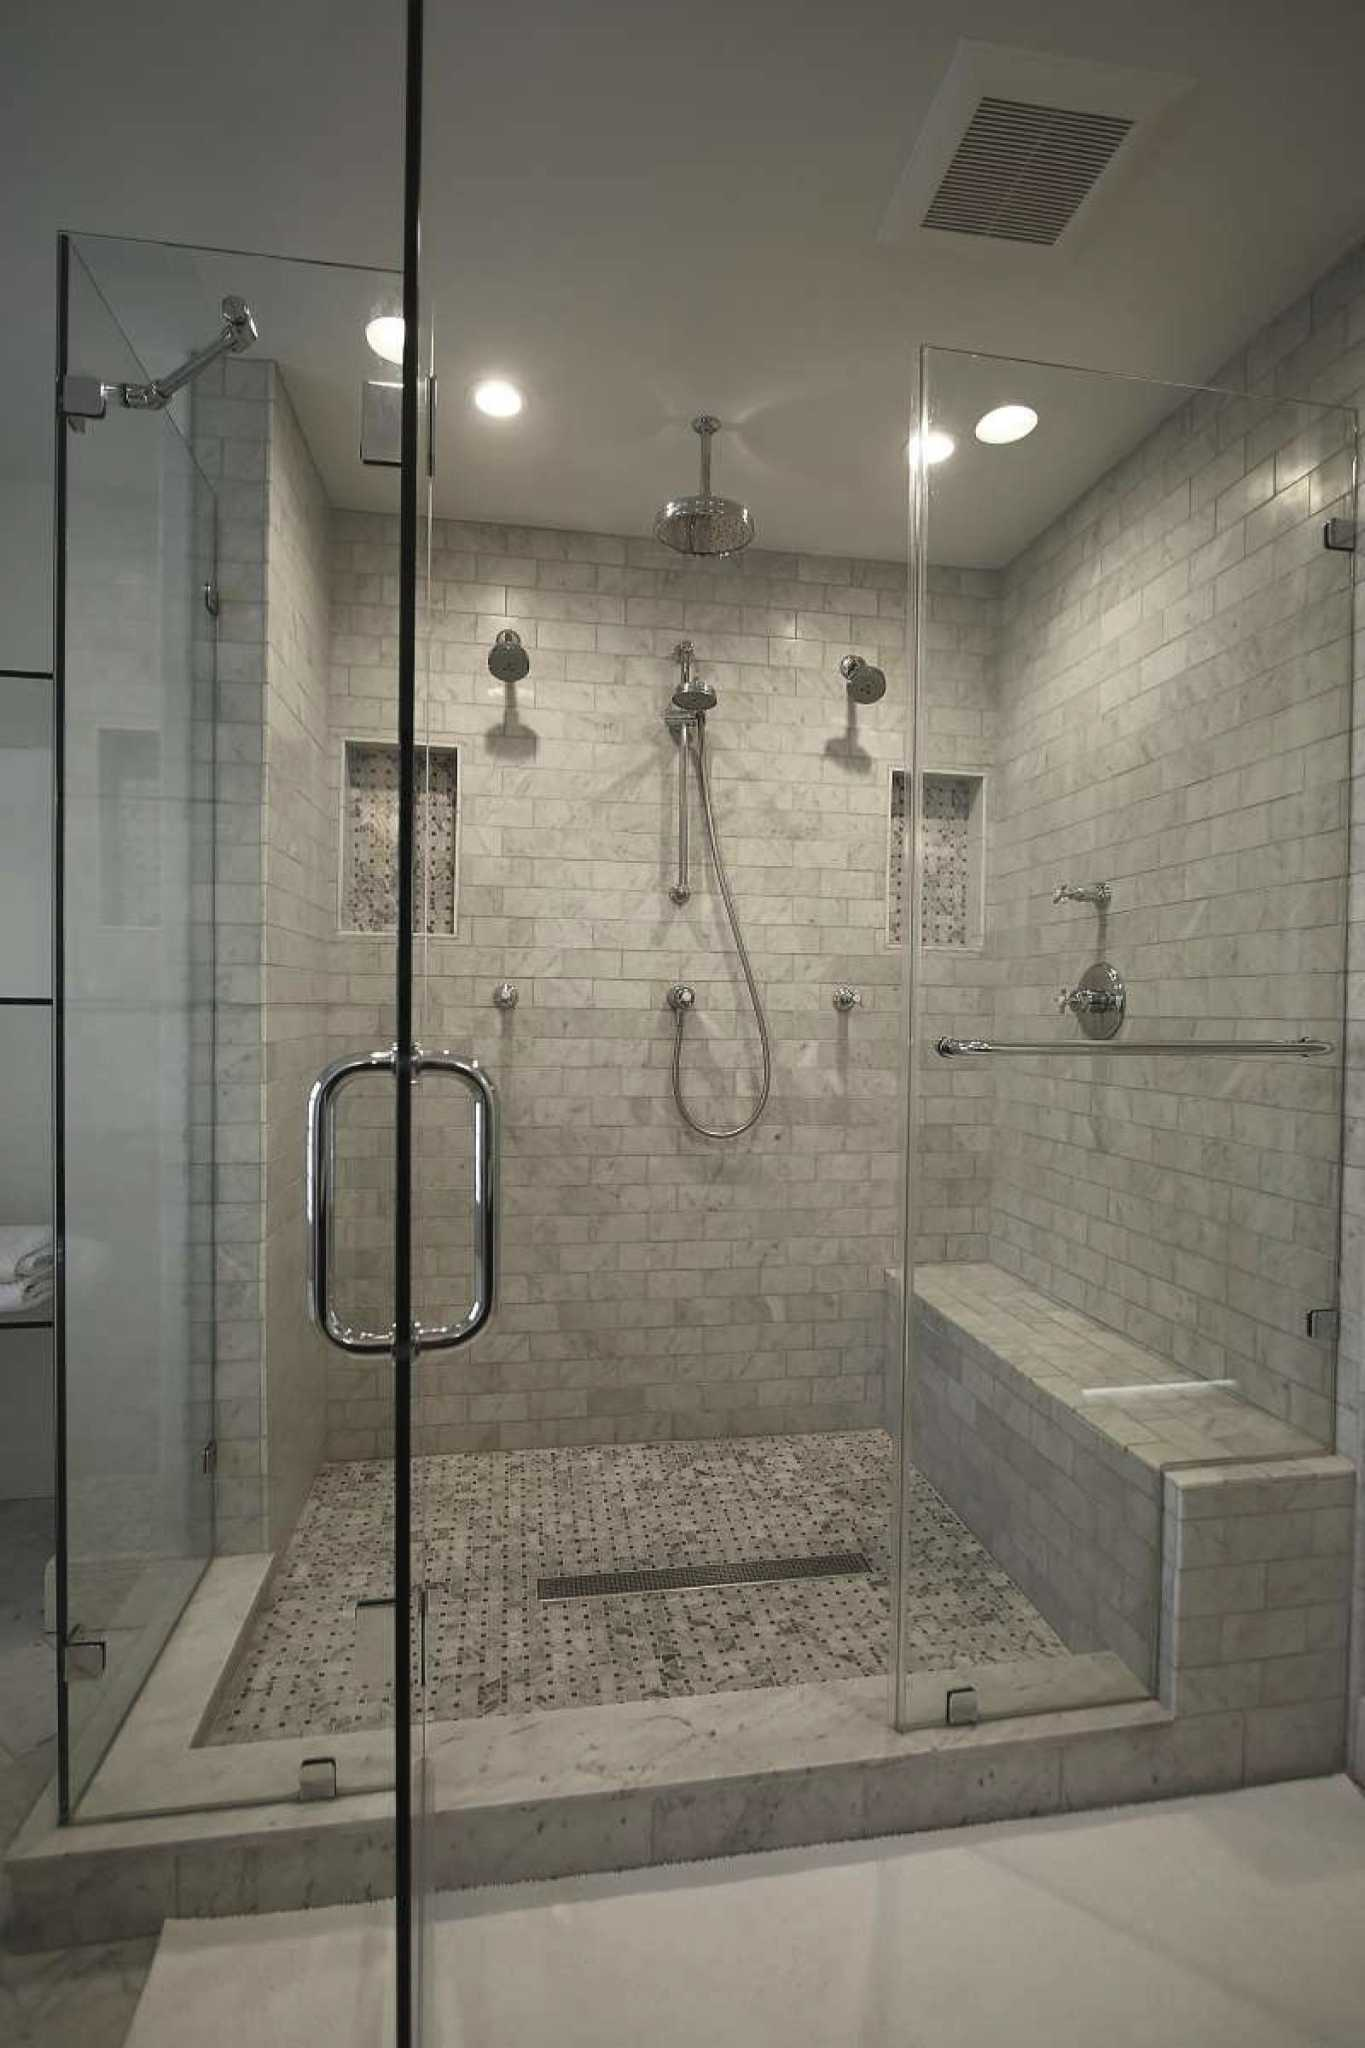 Sleek Modern Shower Doors Provide Streamlined Look